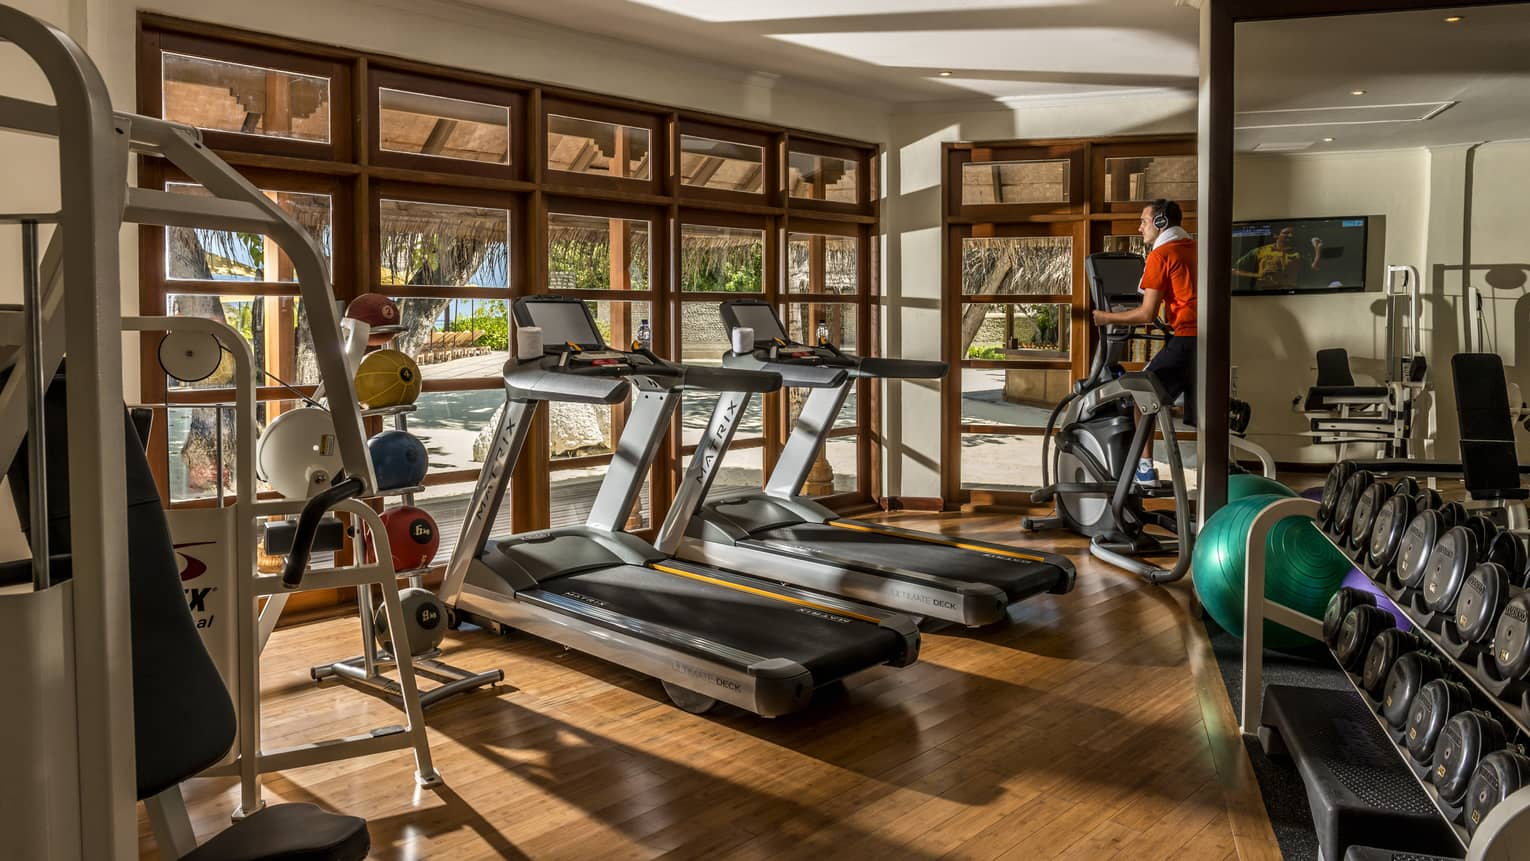 Gym with wooden floors, two treadmills, person on elliptical, free wights, windows looking out to beach